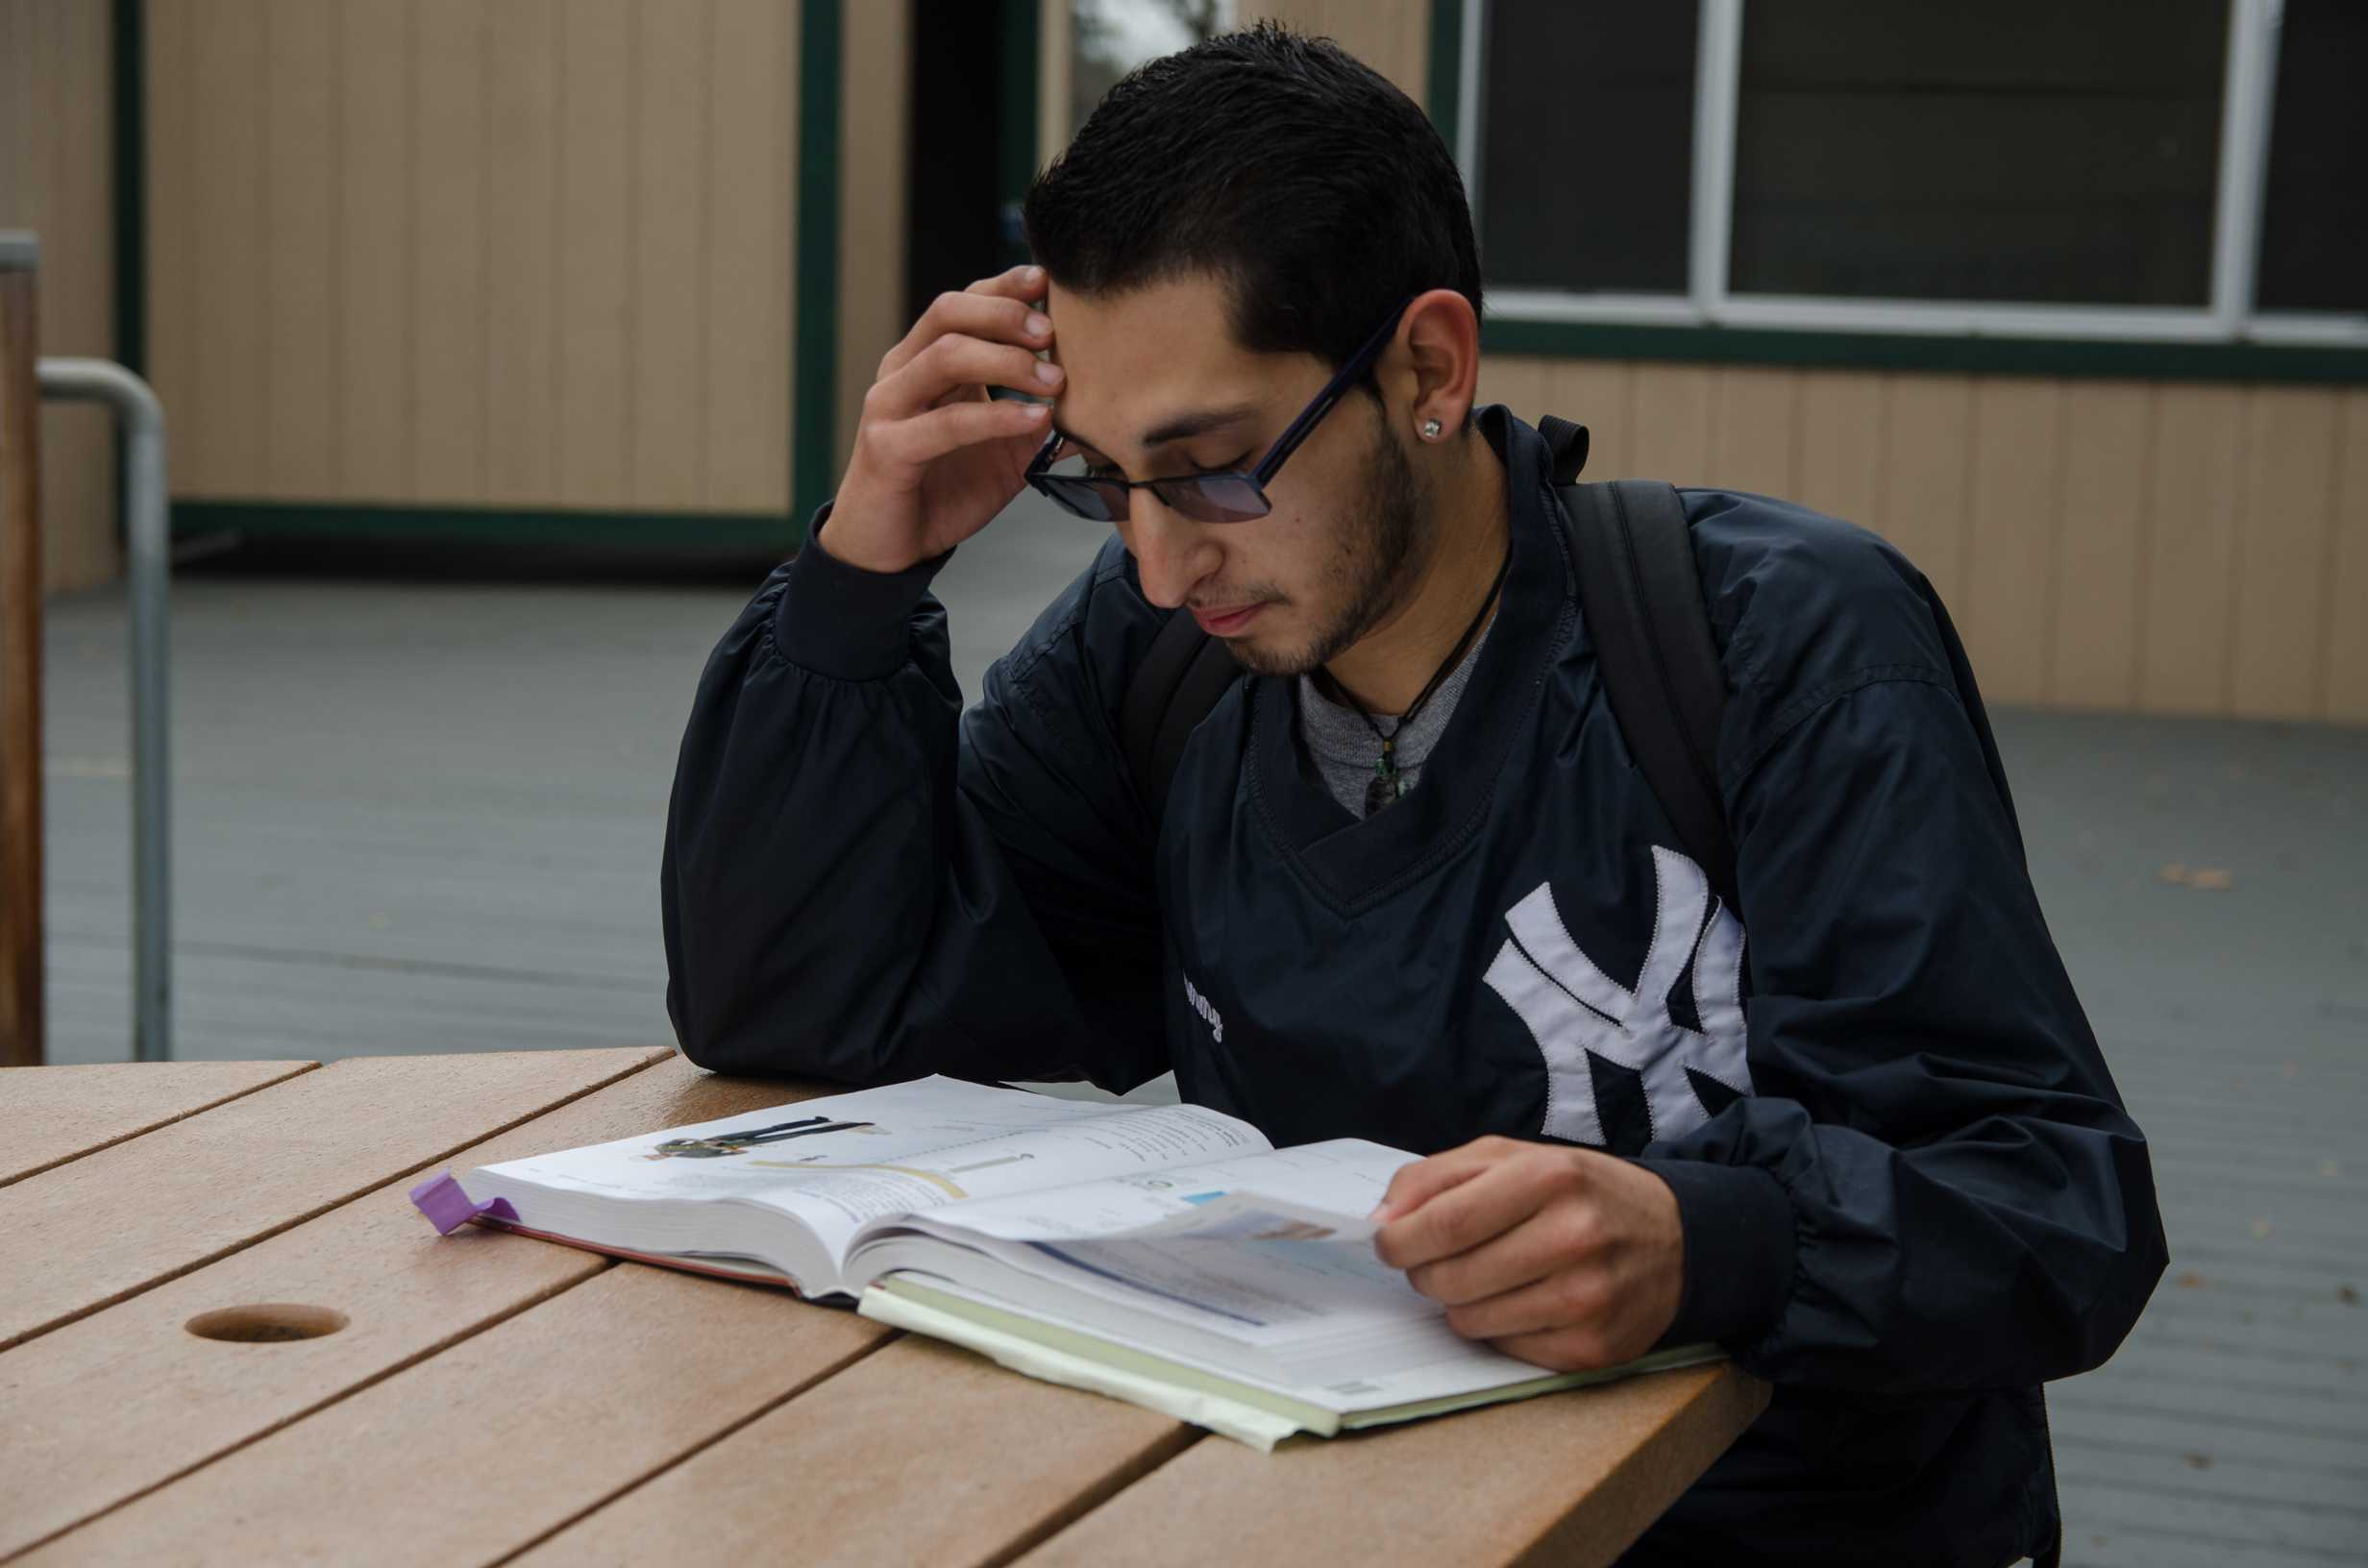 A student studies his textbook outside of class at SRJC at Analy Village.